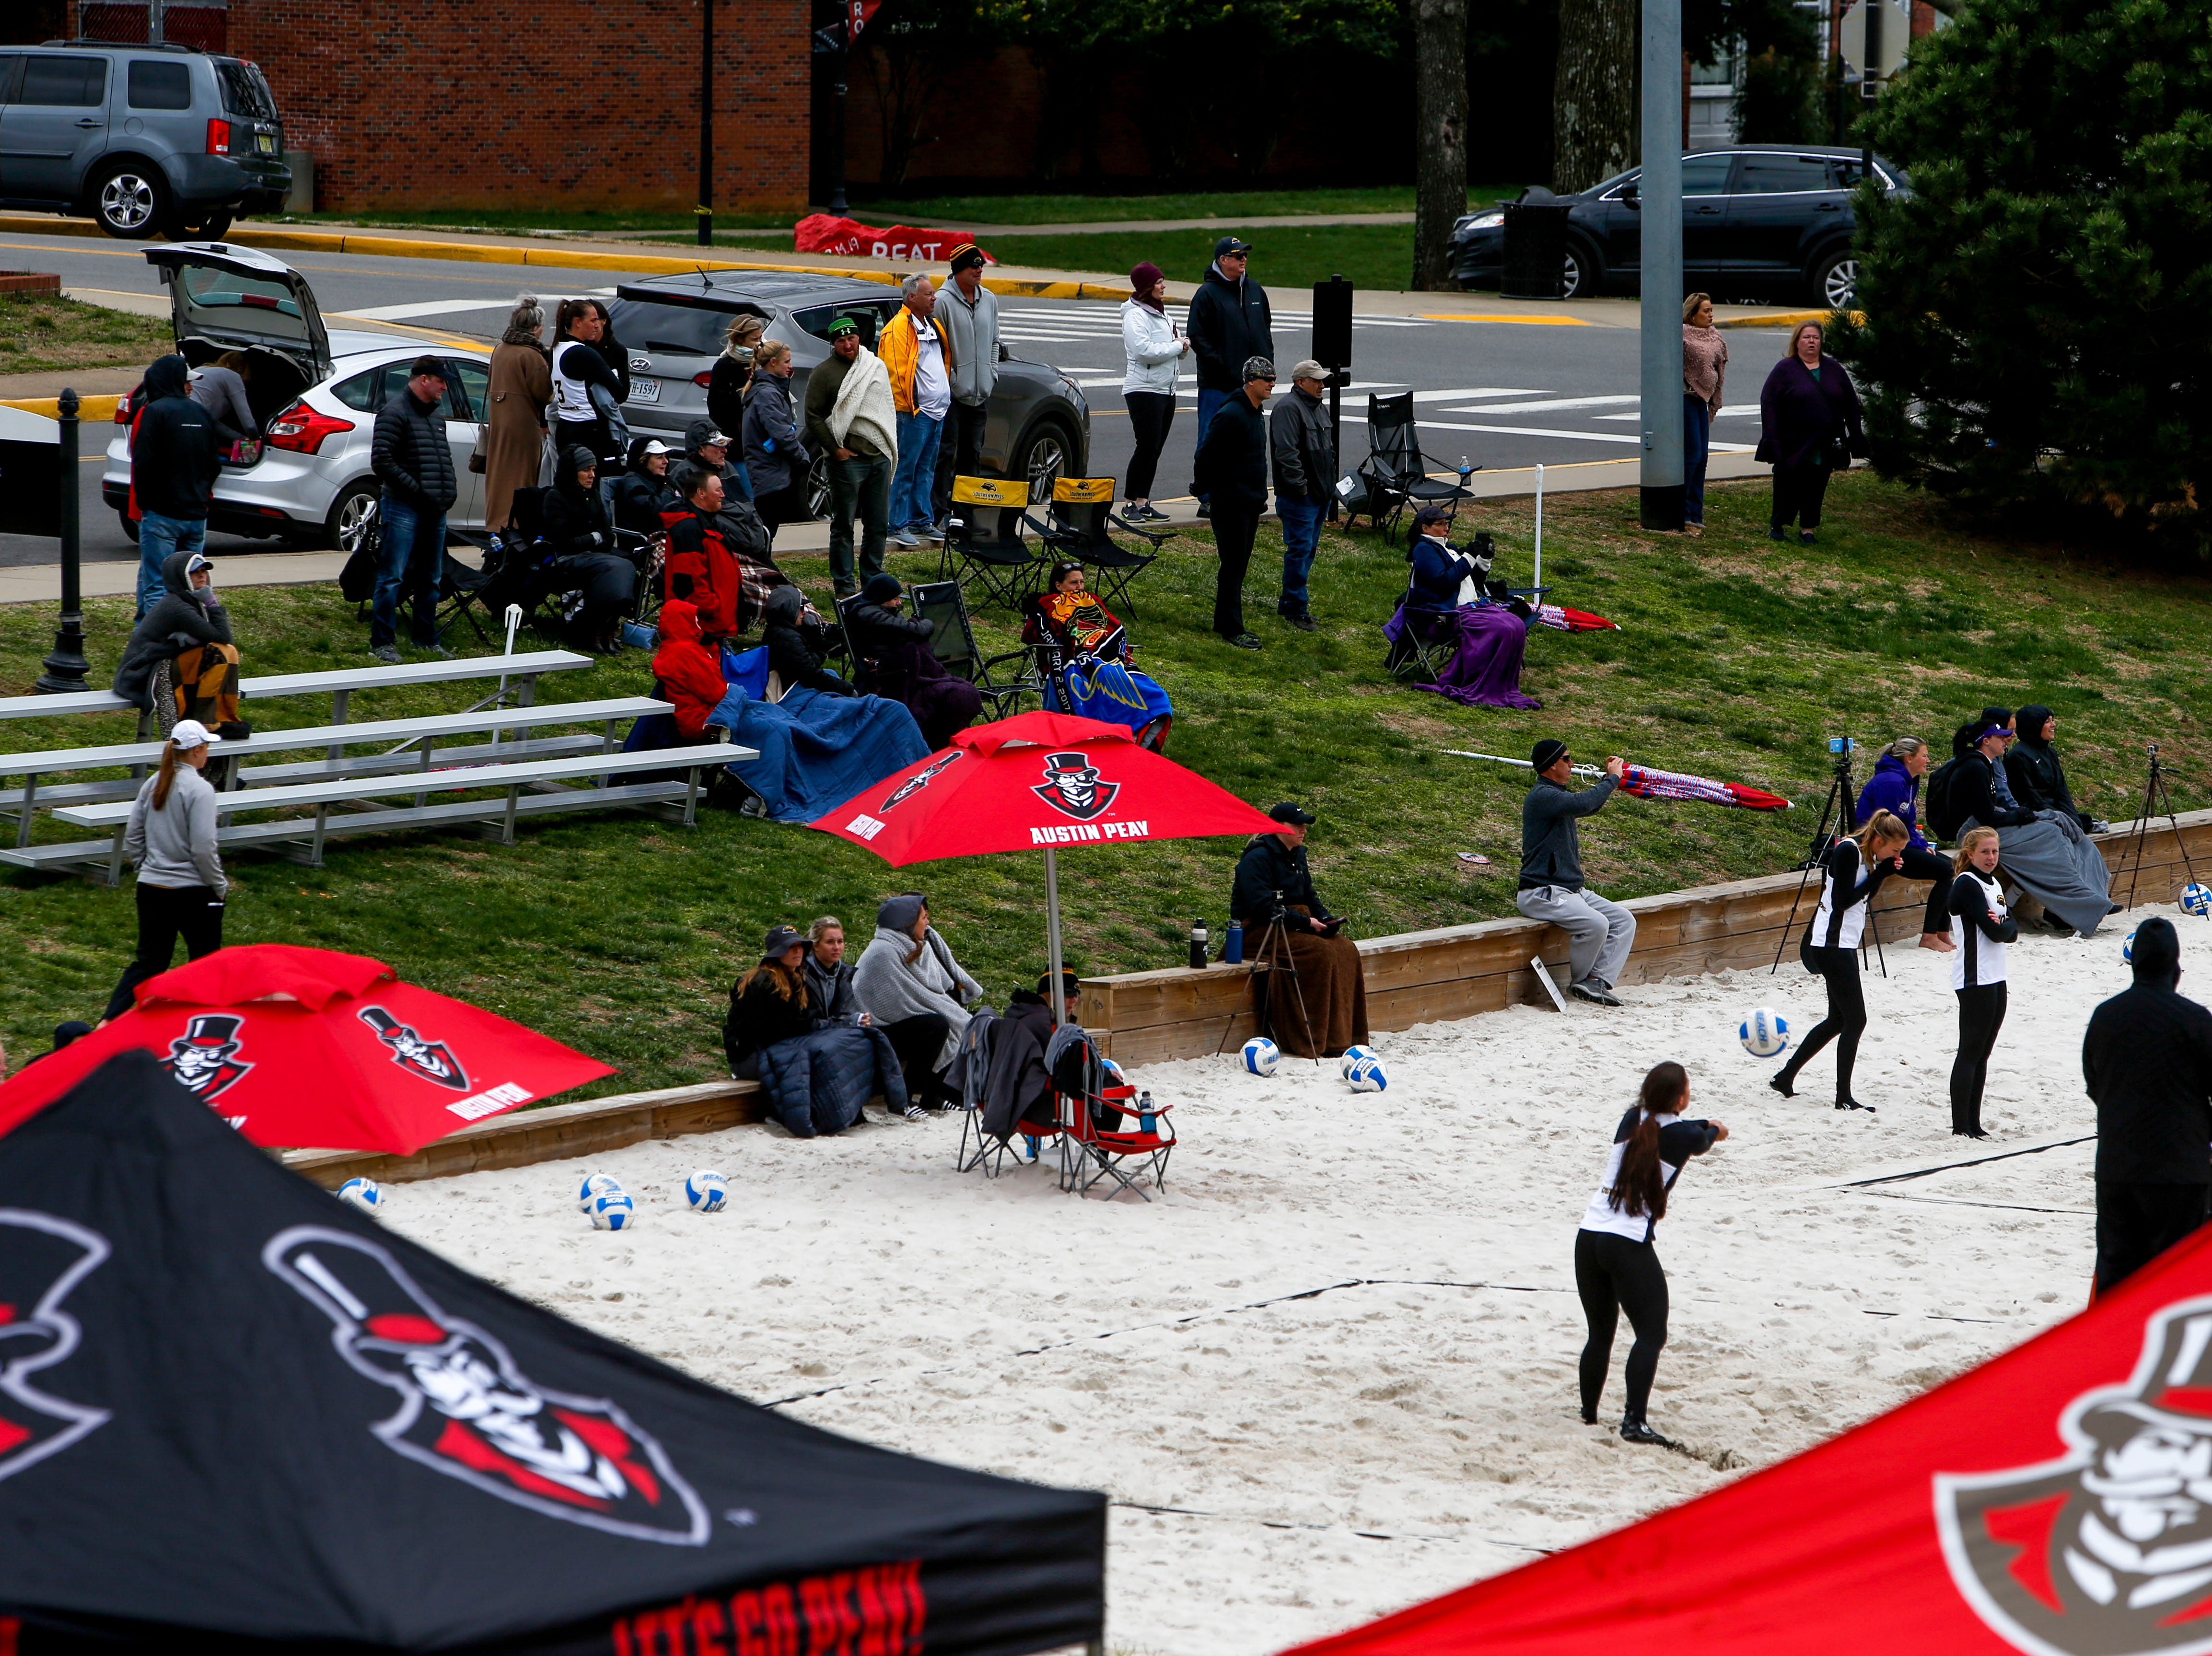 Spectators watch the game between Southern Miss and Central Arkansas at Winfield Dunn Center lawn in Clarksville, Tenn., on Friday, March 15, 2019.